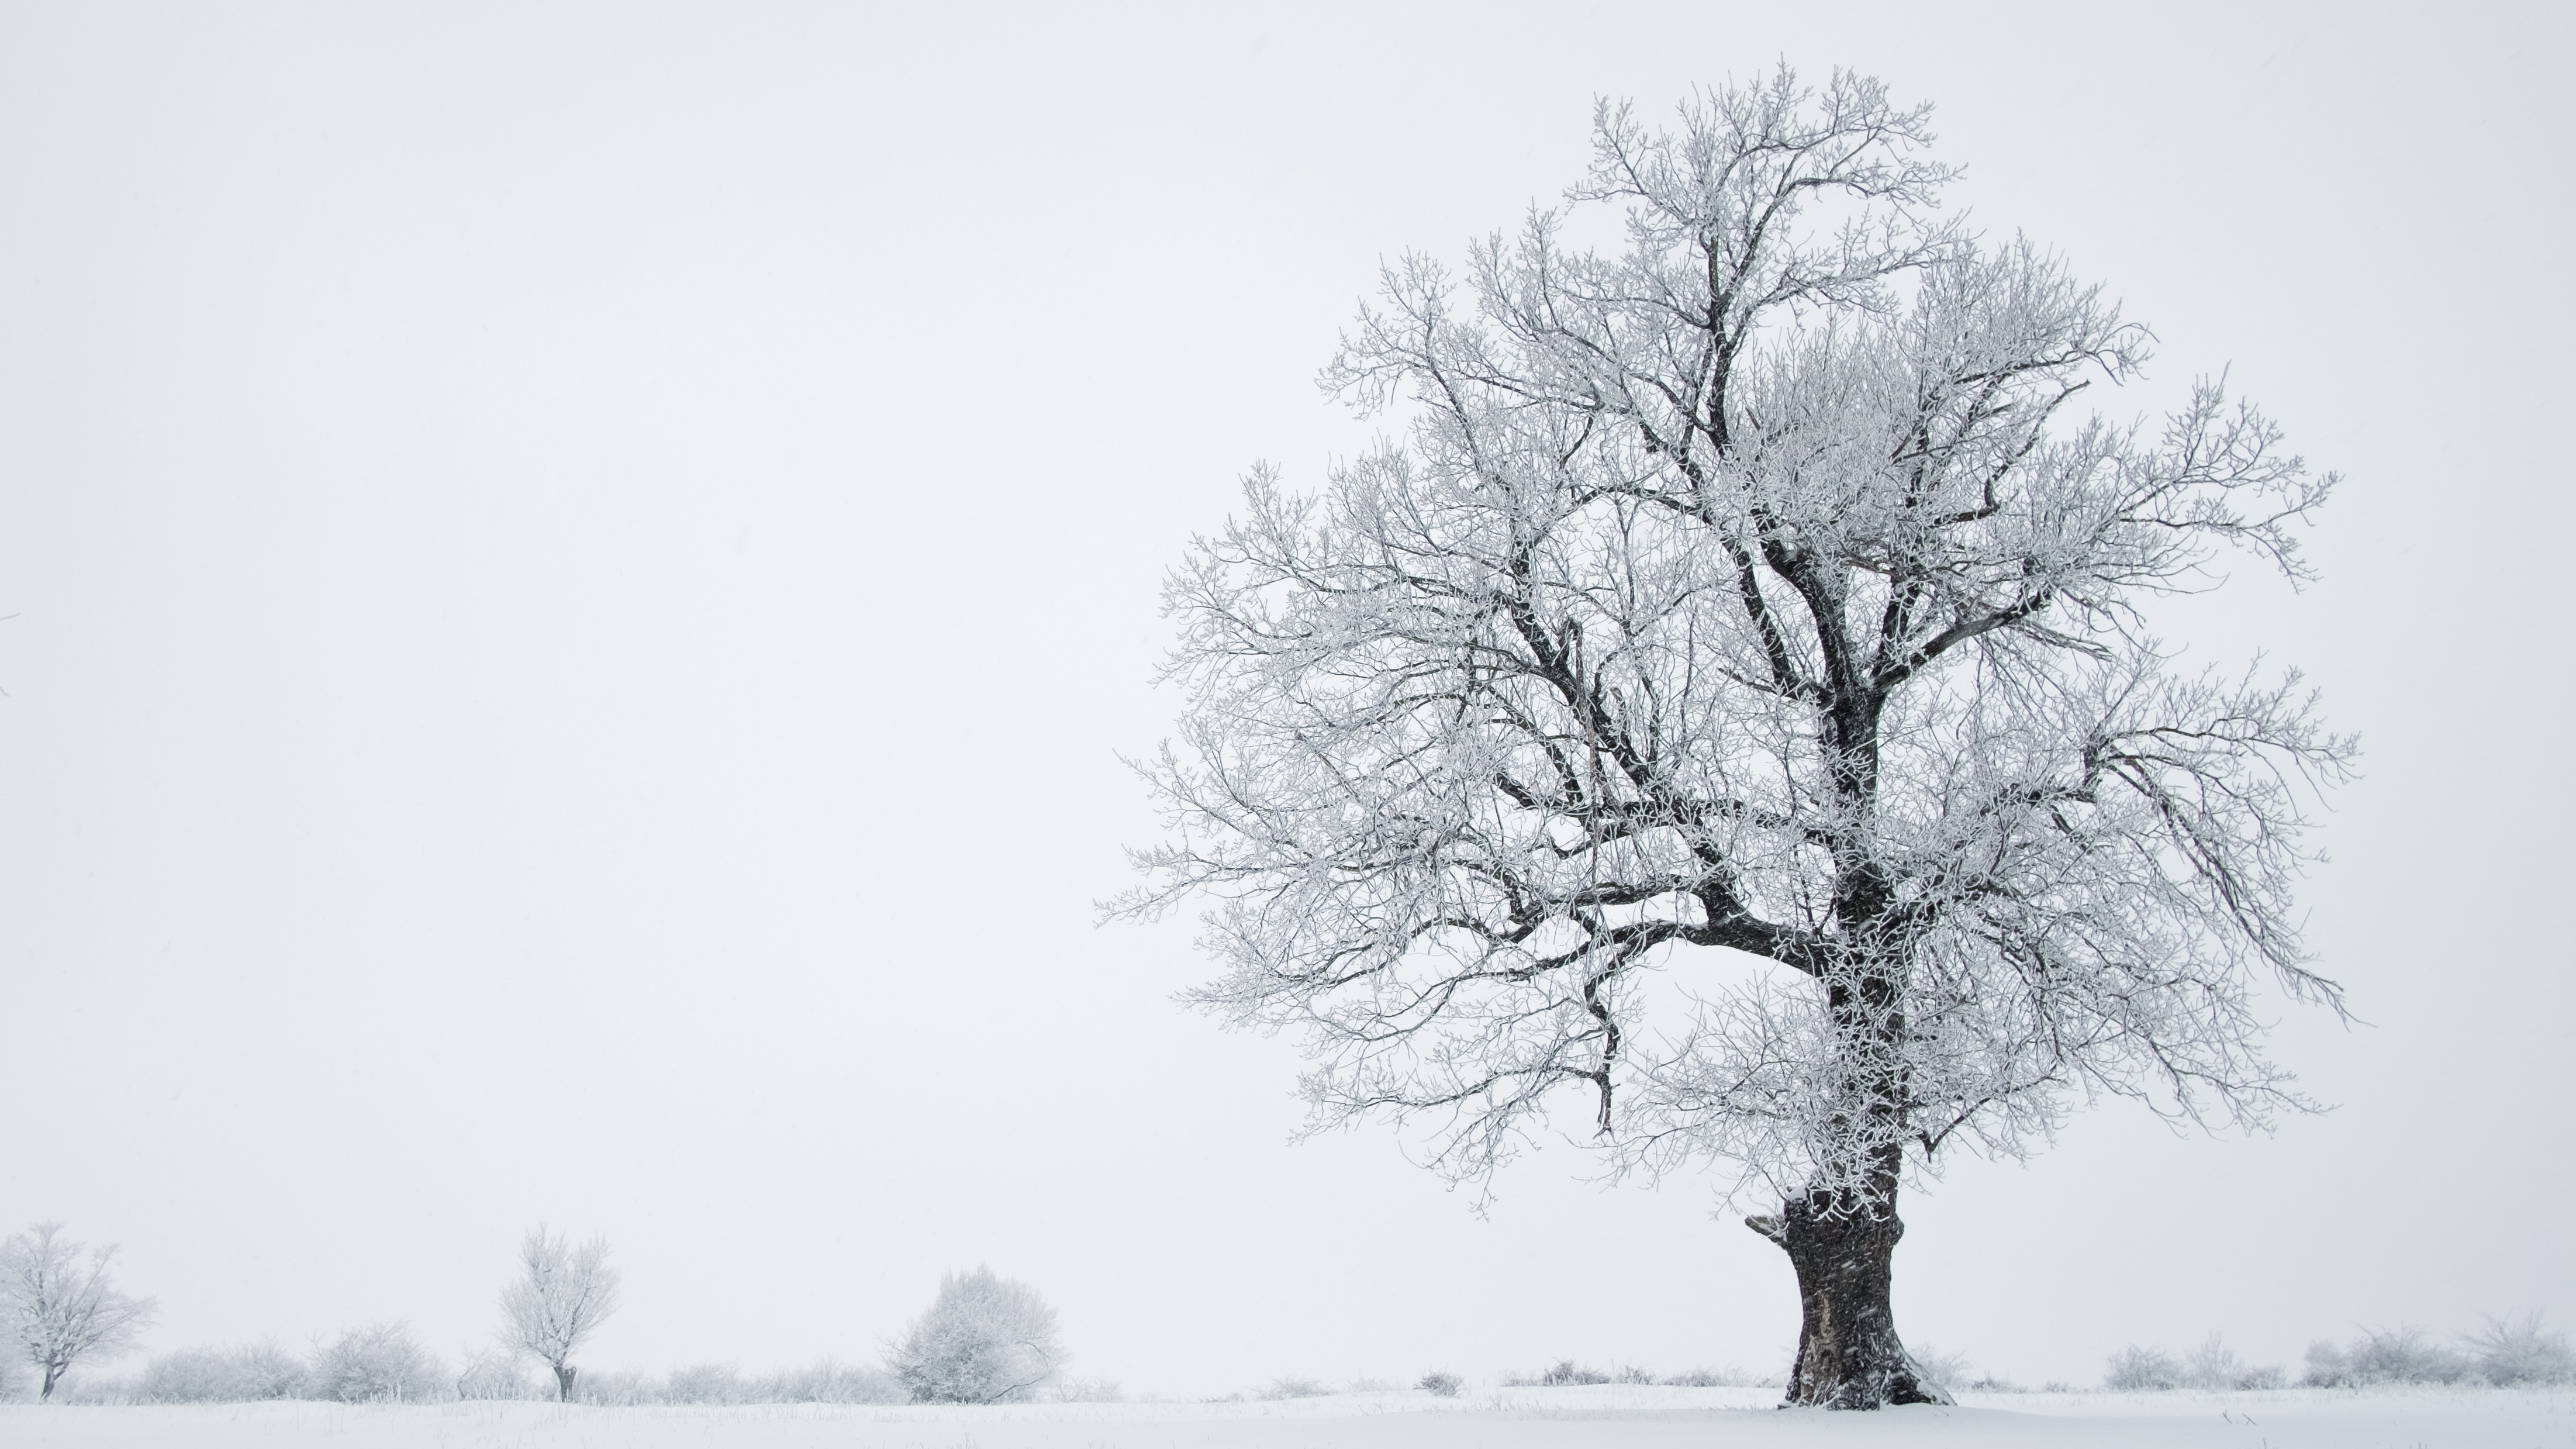 Reasons to love winter   Photo by Lucian Andrei on Unsplash